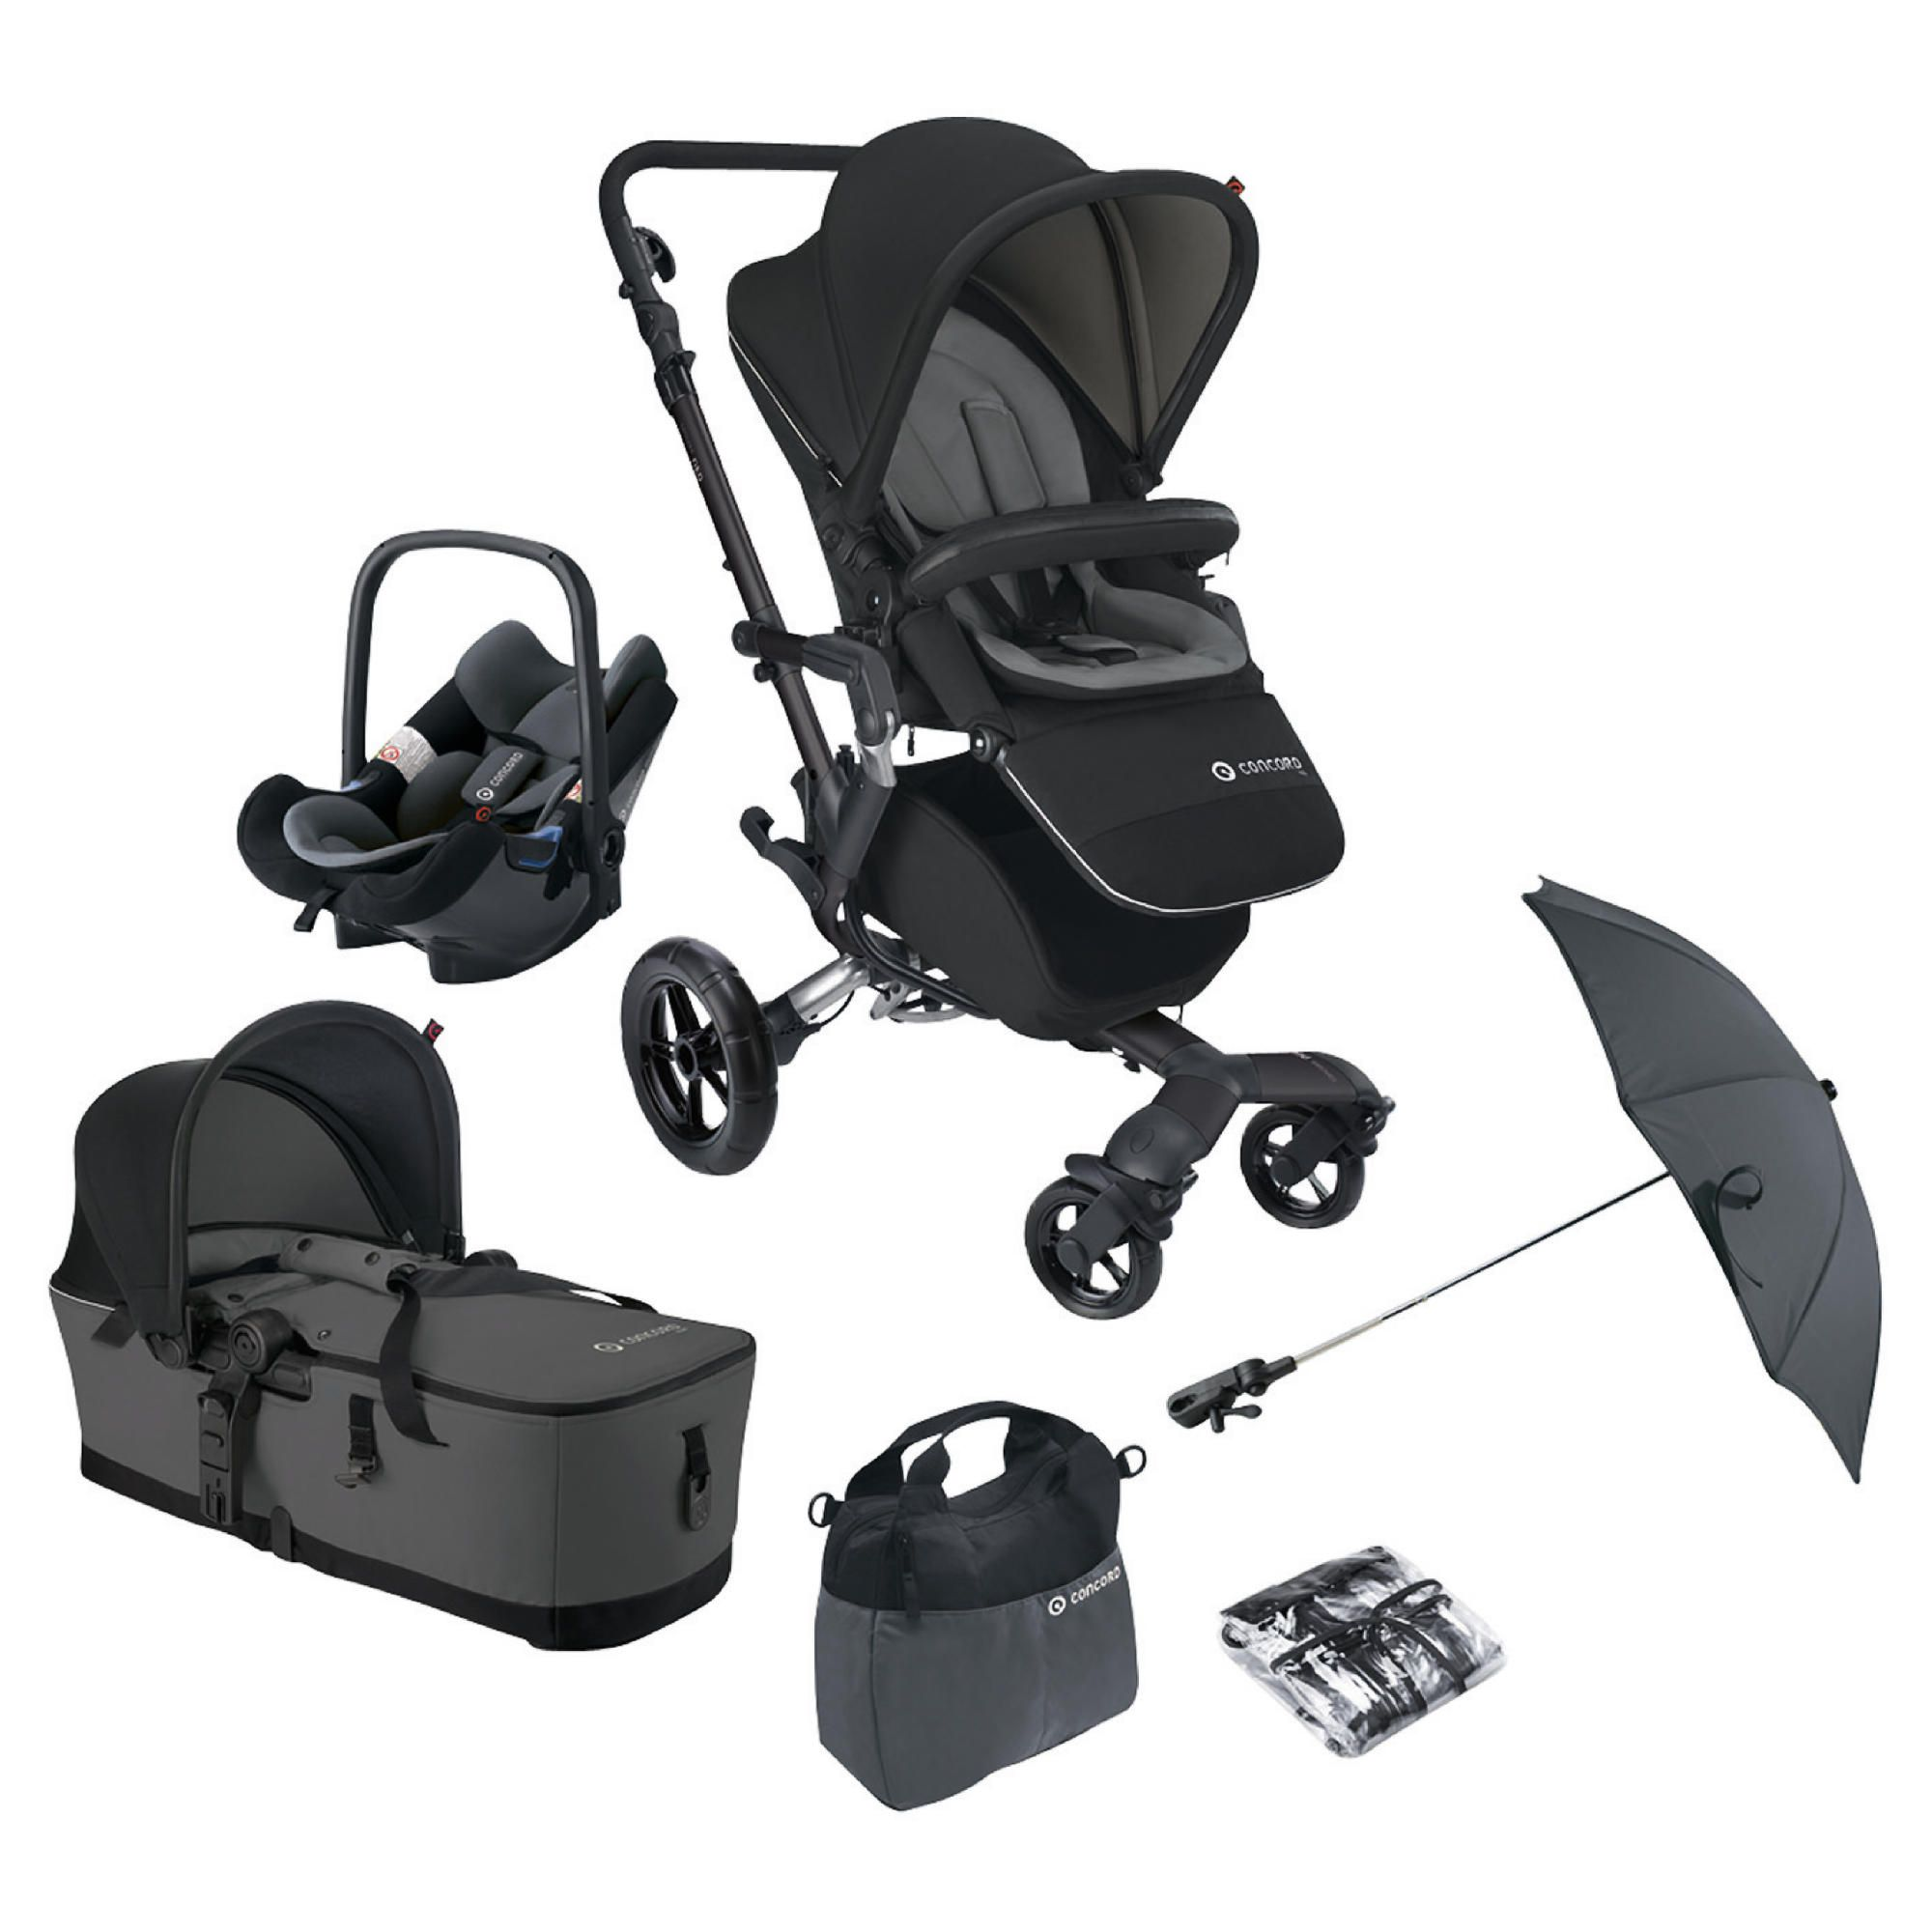 Concord Travel System Neo Mobility set, Graphite at Tesco Direct